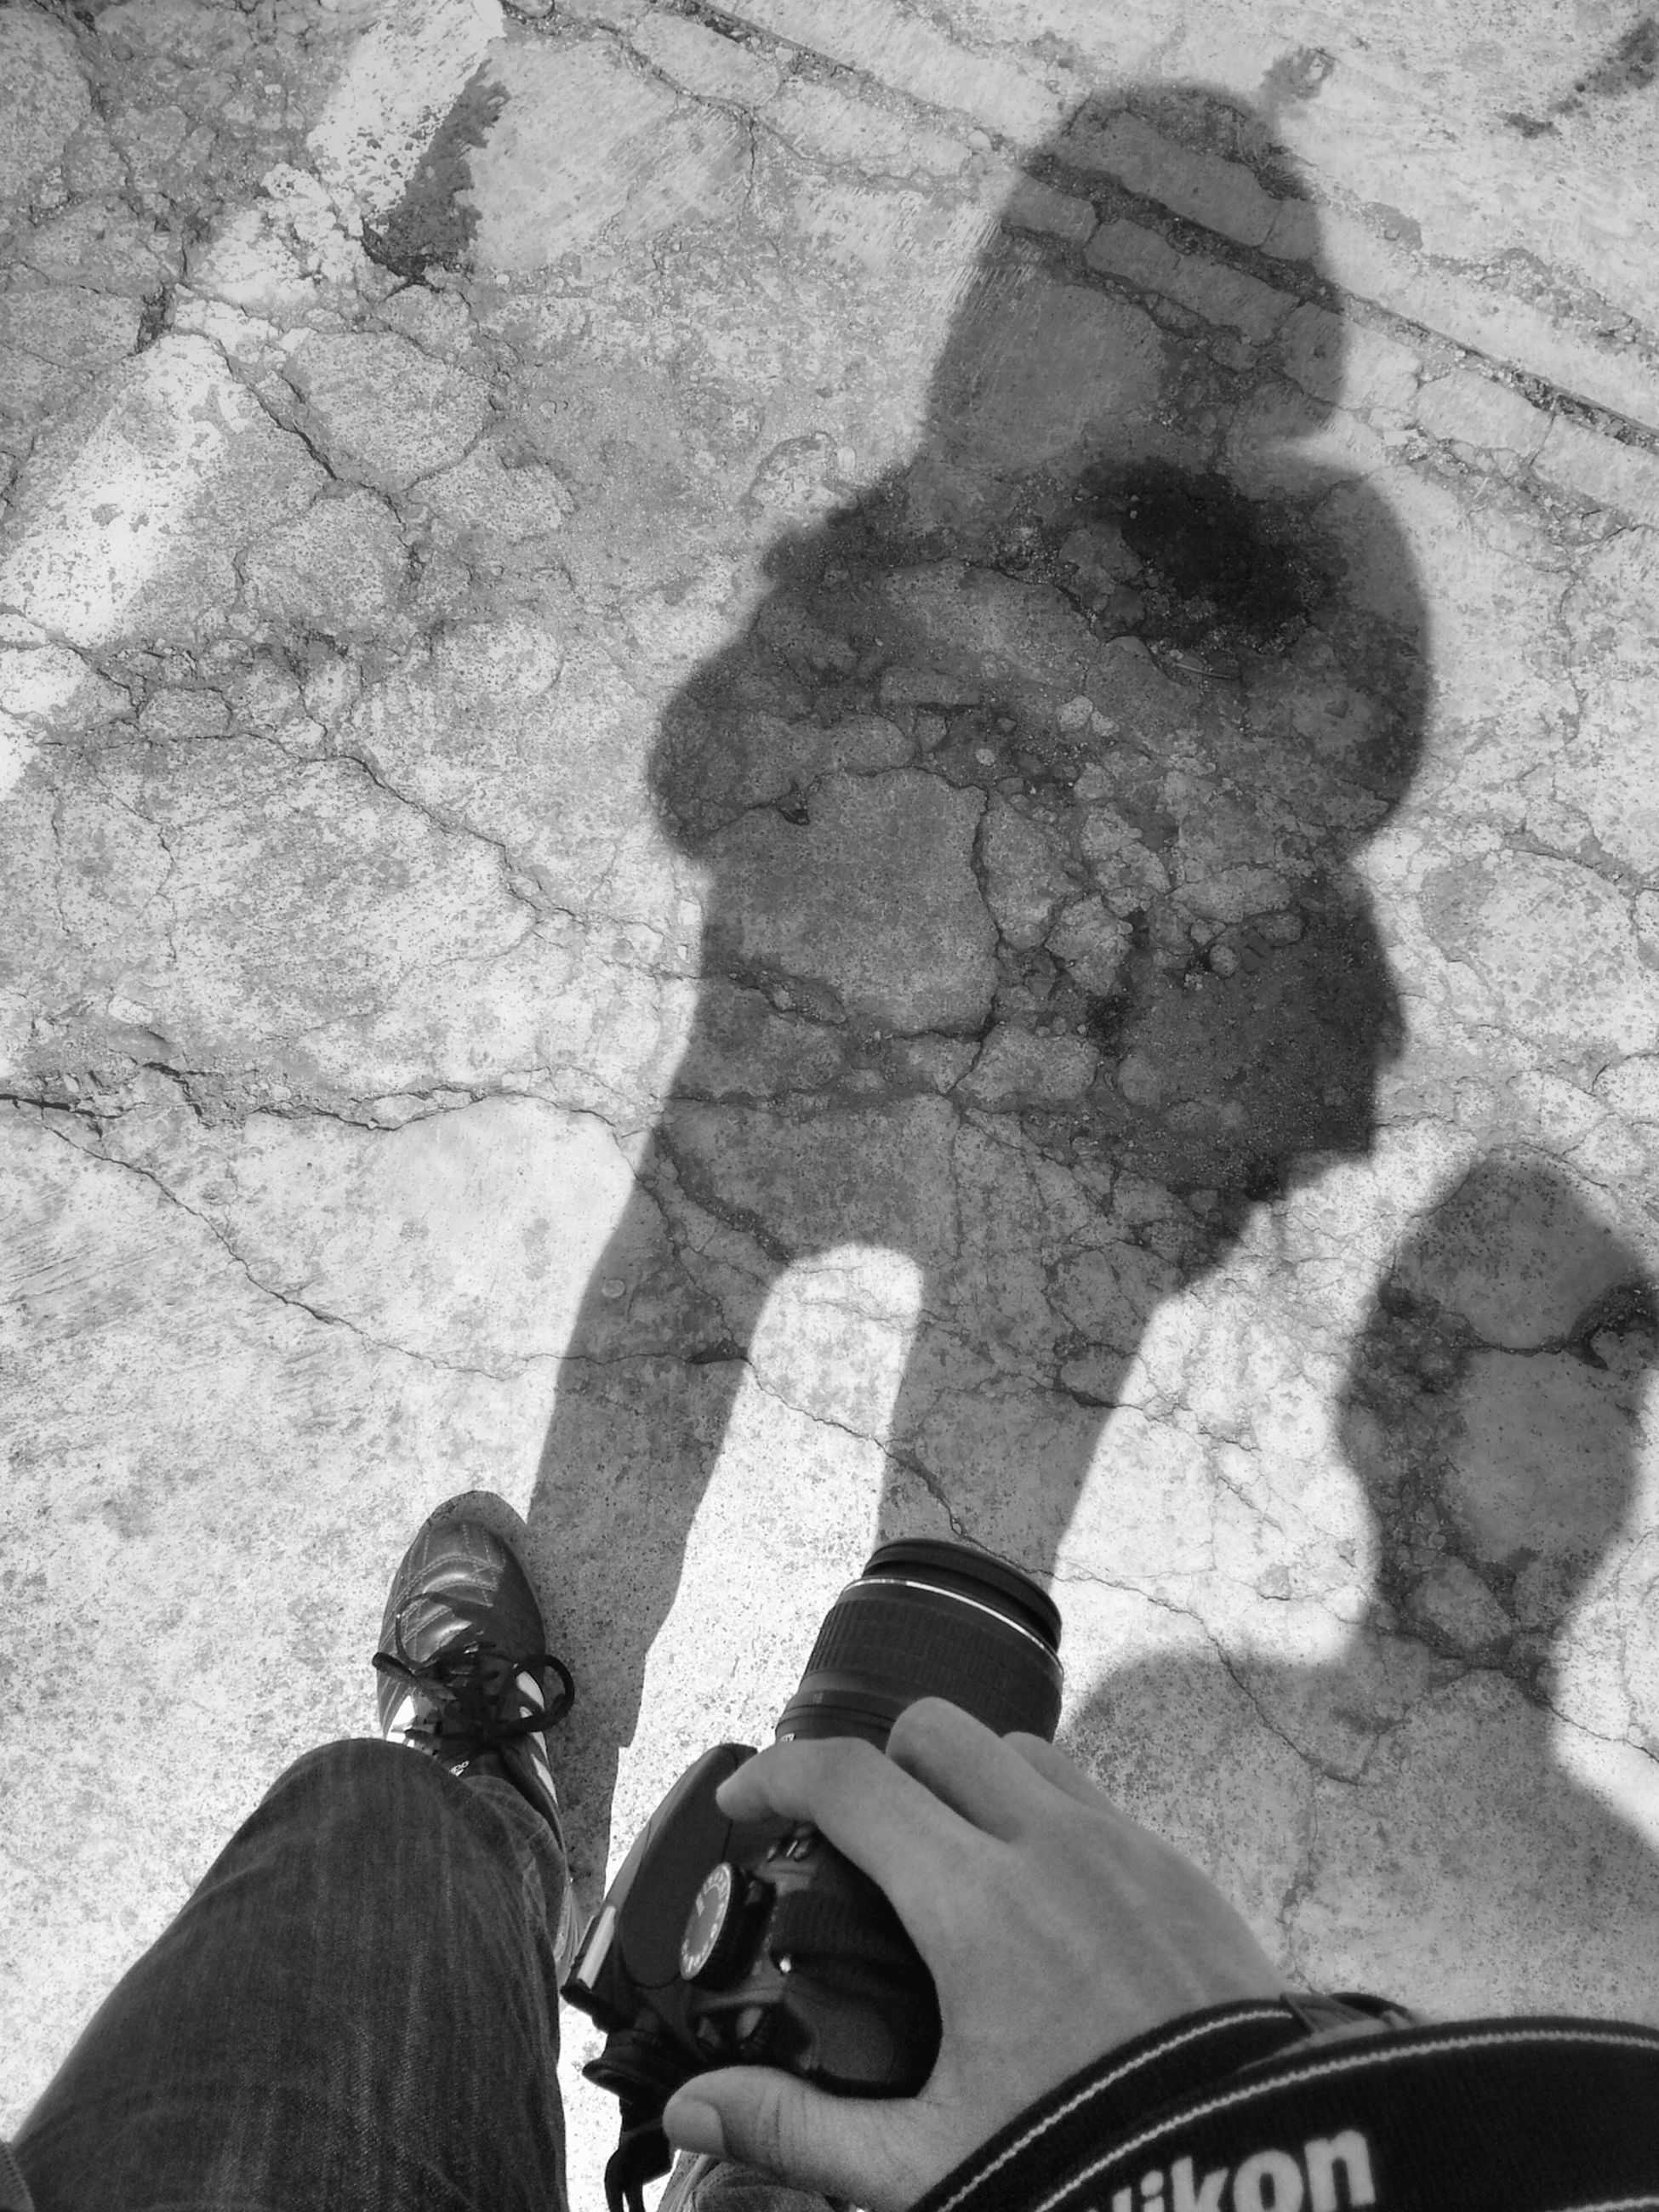 lifestyles, low section, men, leisure activity, personal perspective, person, high angle view, shoe, street, standing, transportation, togetherness, shadow, road, bonding, unrecognizable person